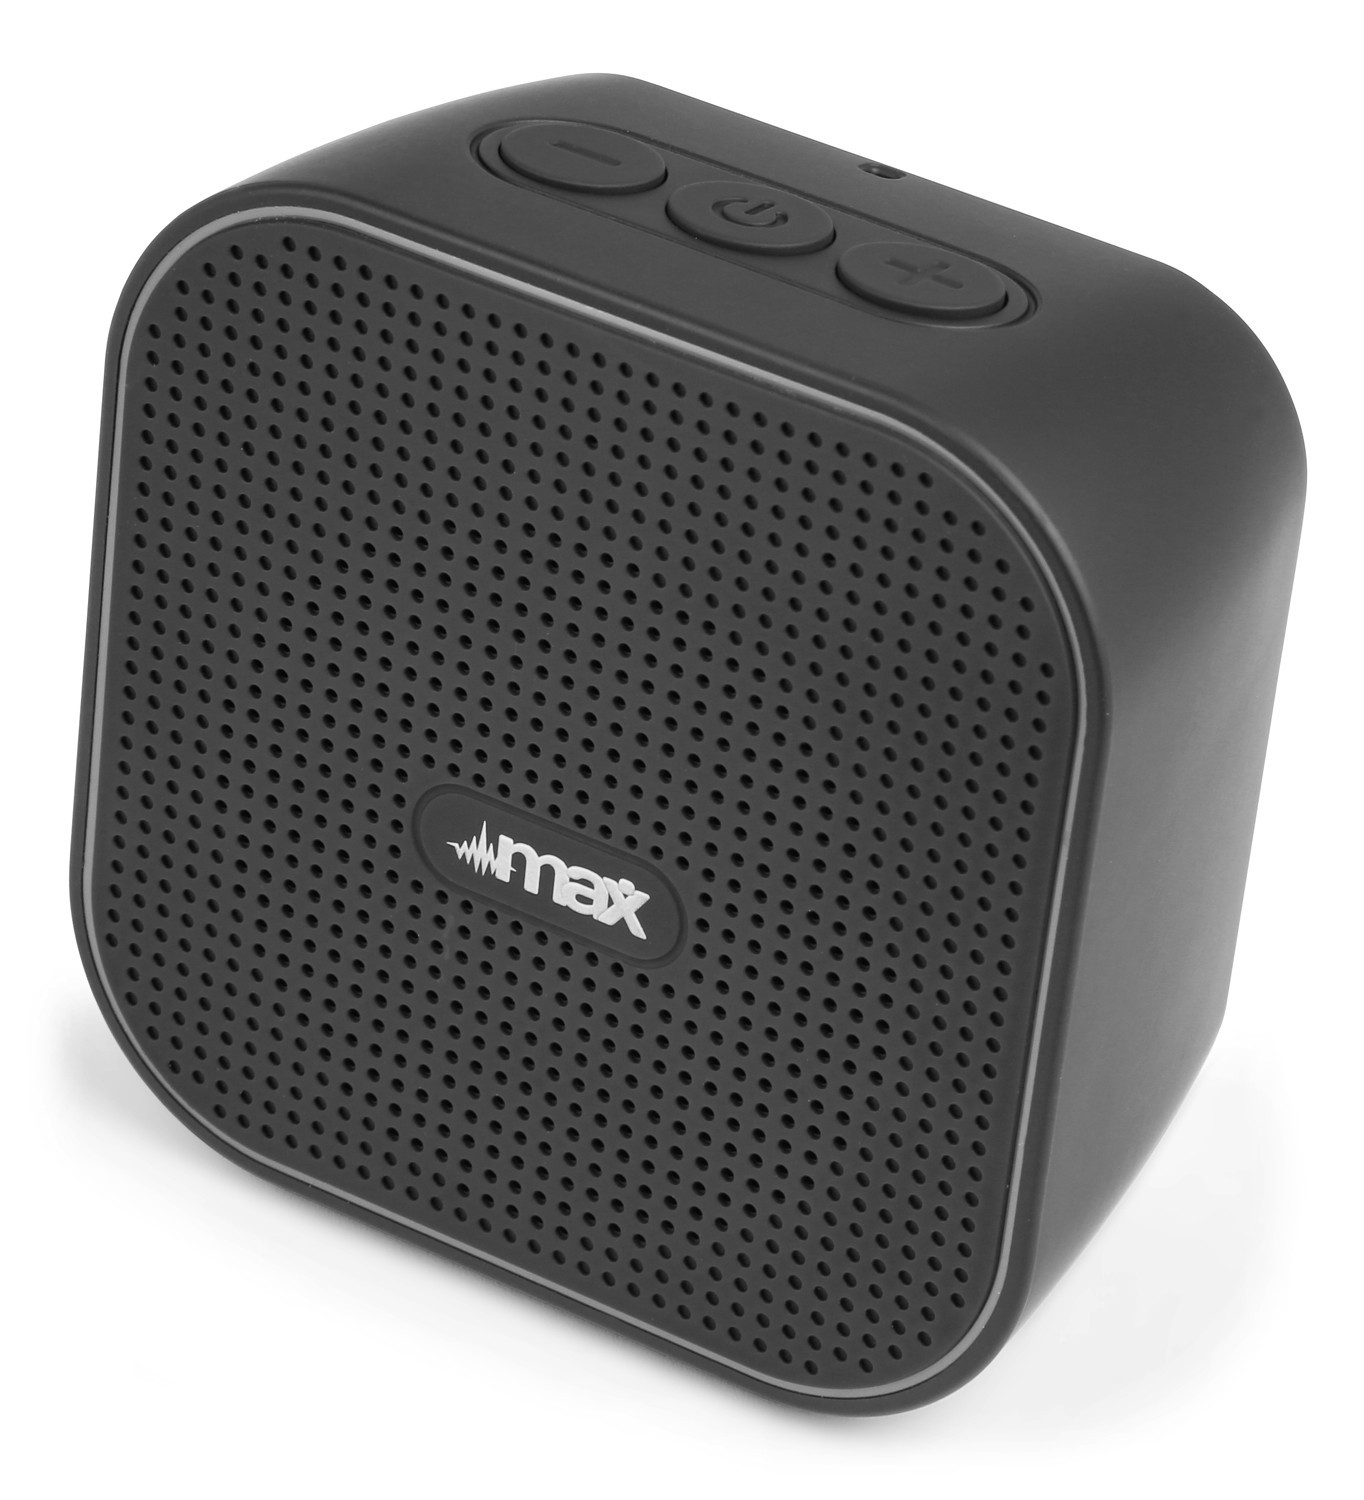 Altavoz portatil Bluetooth MX1 - Altavoz portatil Bluetooth MX1 con entrada SD.Modelo MX1